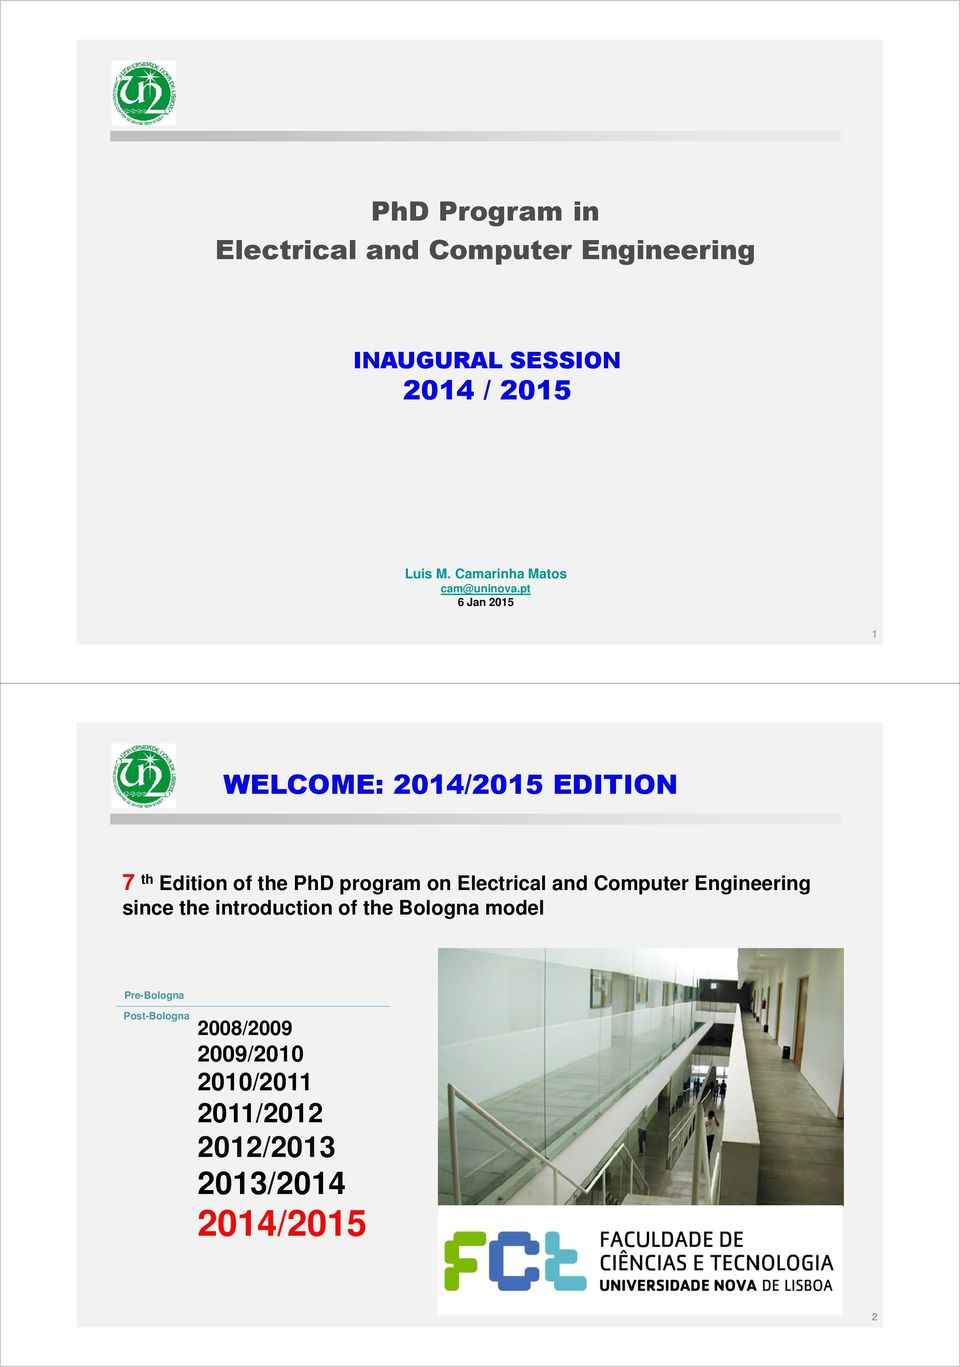 pt 6 Jan 2015 1 WELCOME: 2014/2015 EDITION 7 th Edition of the PhD program on Electrical and